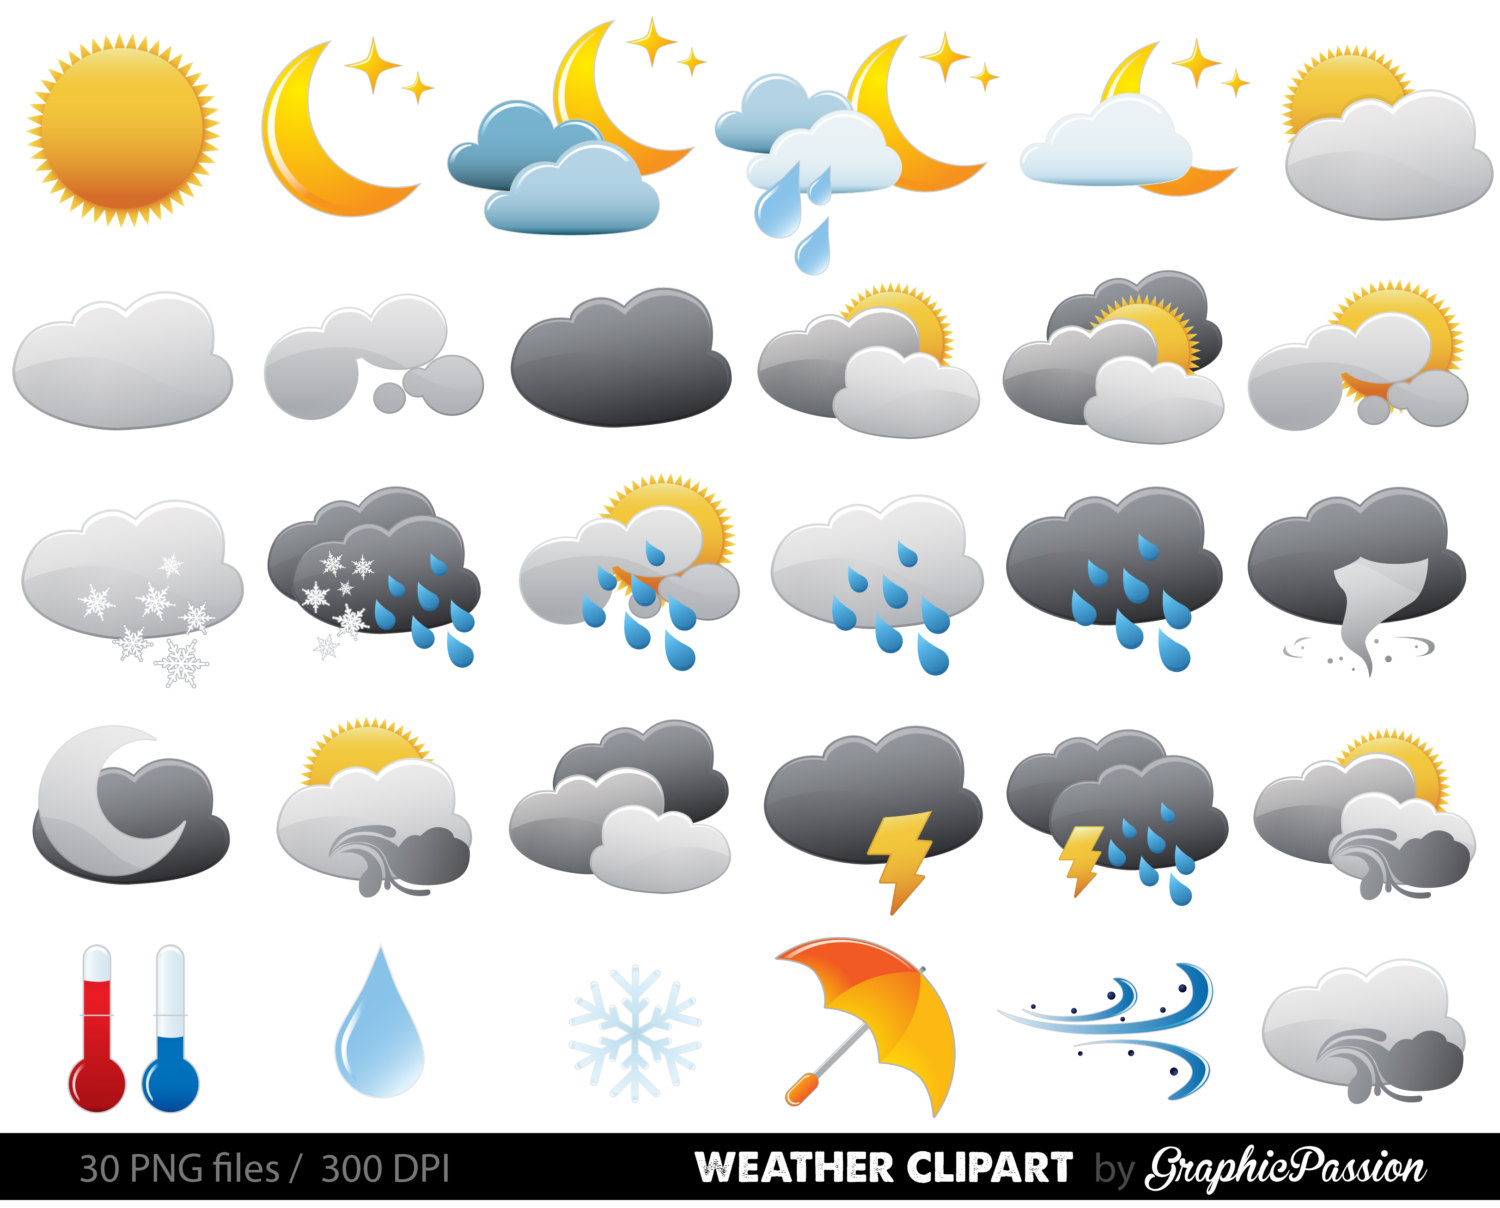 weather clip art free clipart panda free clipart images rh clipartpanda com weather clipart black and white weather clipart black and white